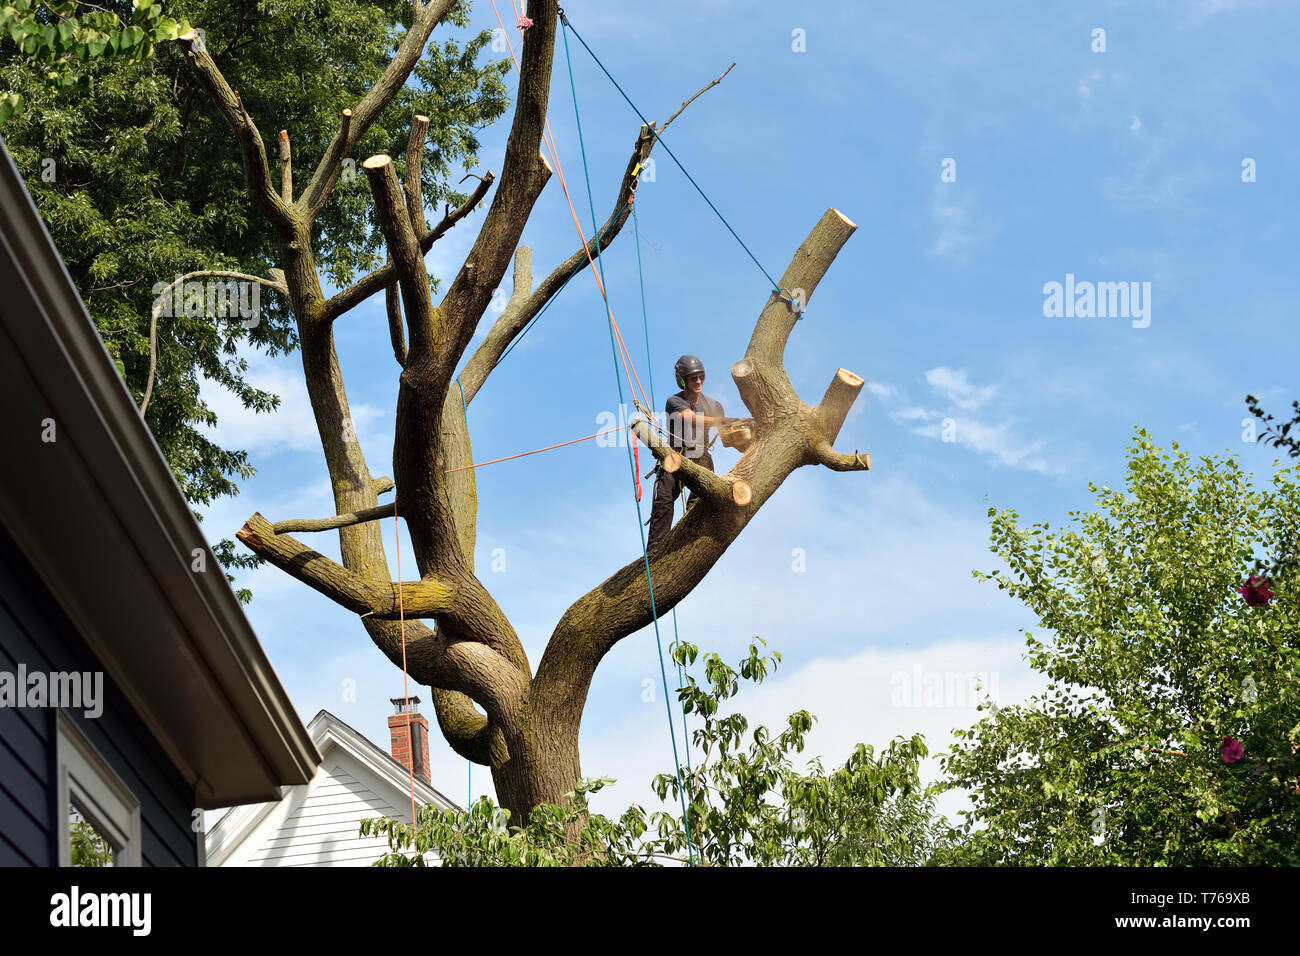 Arborist climbing and dismantling elm tree with chainsaw and rigging equipment - Stock Image